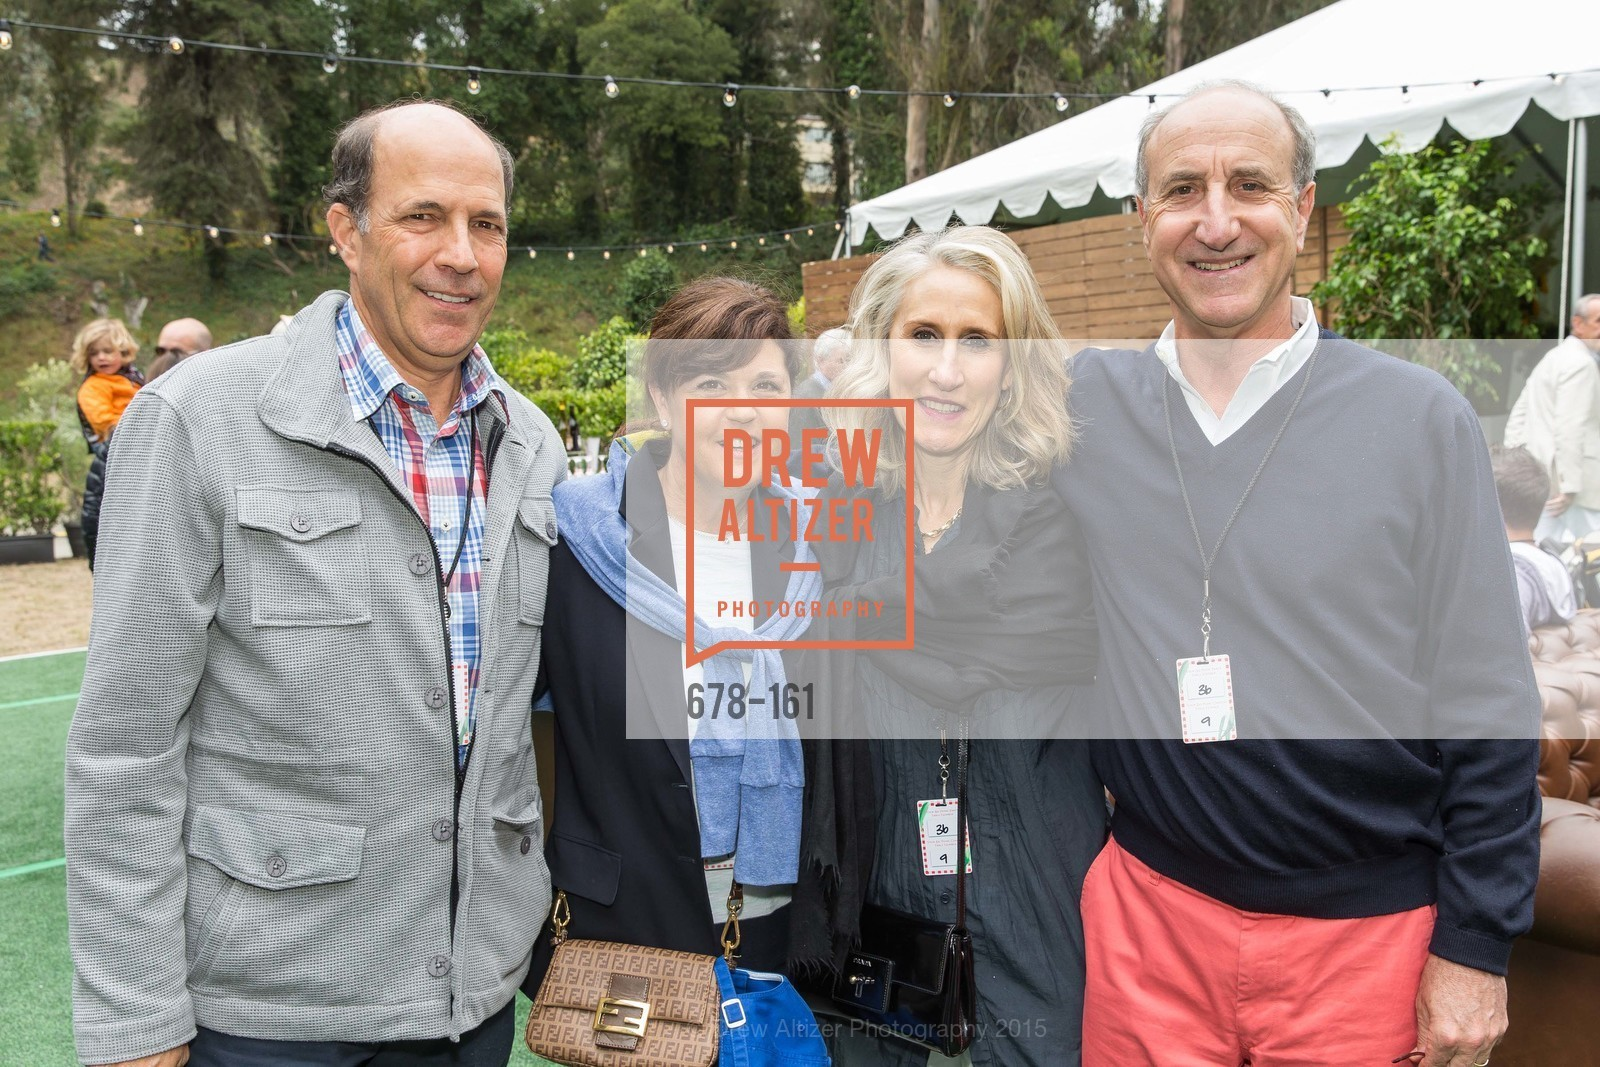 John Roos, Susie Roos, Jamie Meyers, Mark Meyers, THE BIG PICNIC Kicking off  2015 Stern Grove Season, Stern Grove. 2750 19th Avenue, June 14th, 2015,Drew Altizer, Drew Altizer Photography, full-service agency, private events, San Francisco photographer, photographer california